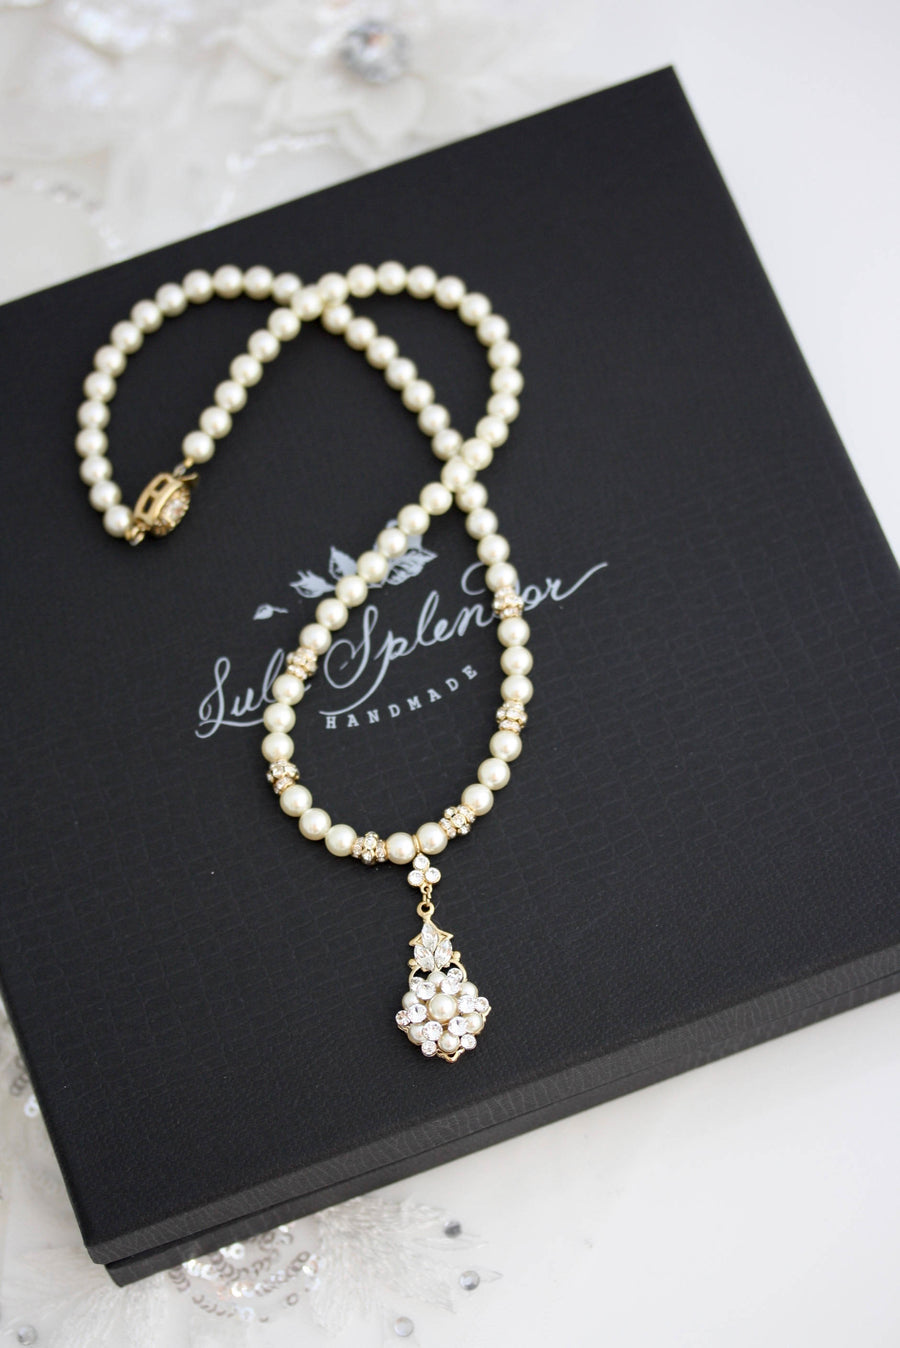 Paris Pendant Gold Pearl Wedding Necklace - Lulu Splendor